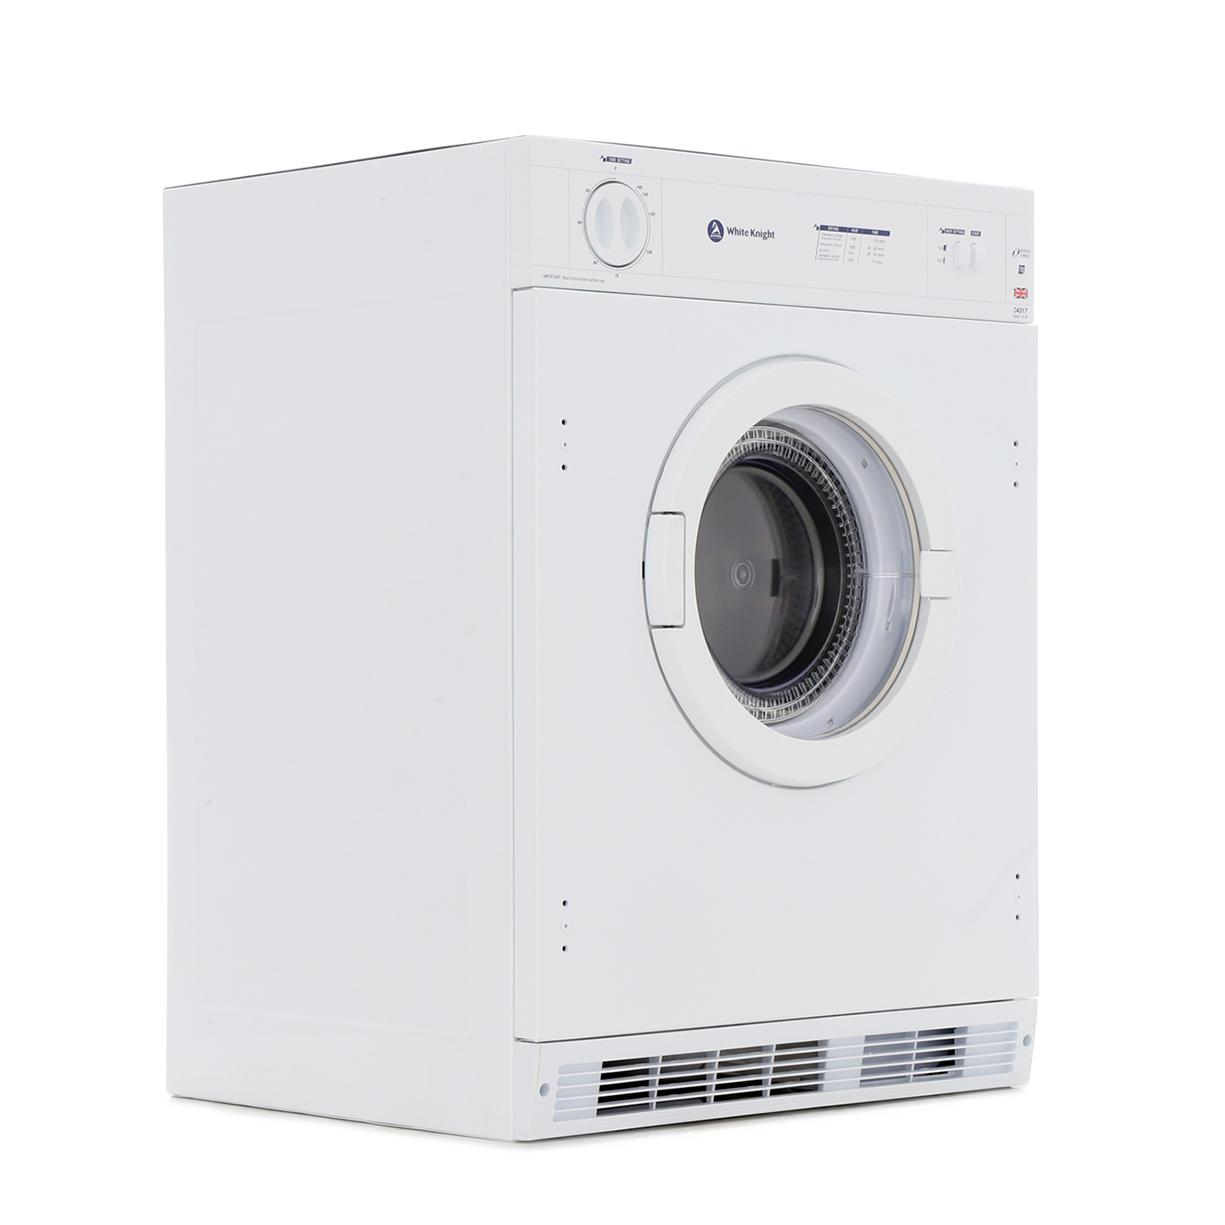 buy white knight c4317 integrated vented dryer marks electrical rh markselectrical co uk Black Knight White Knight Logo